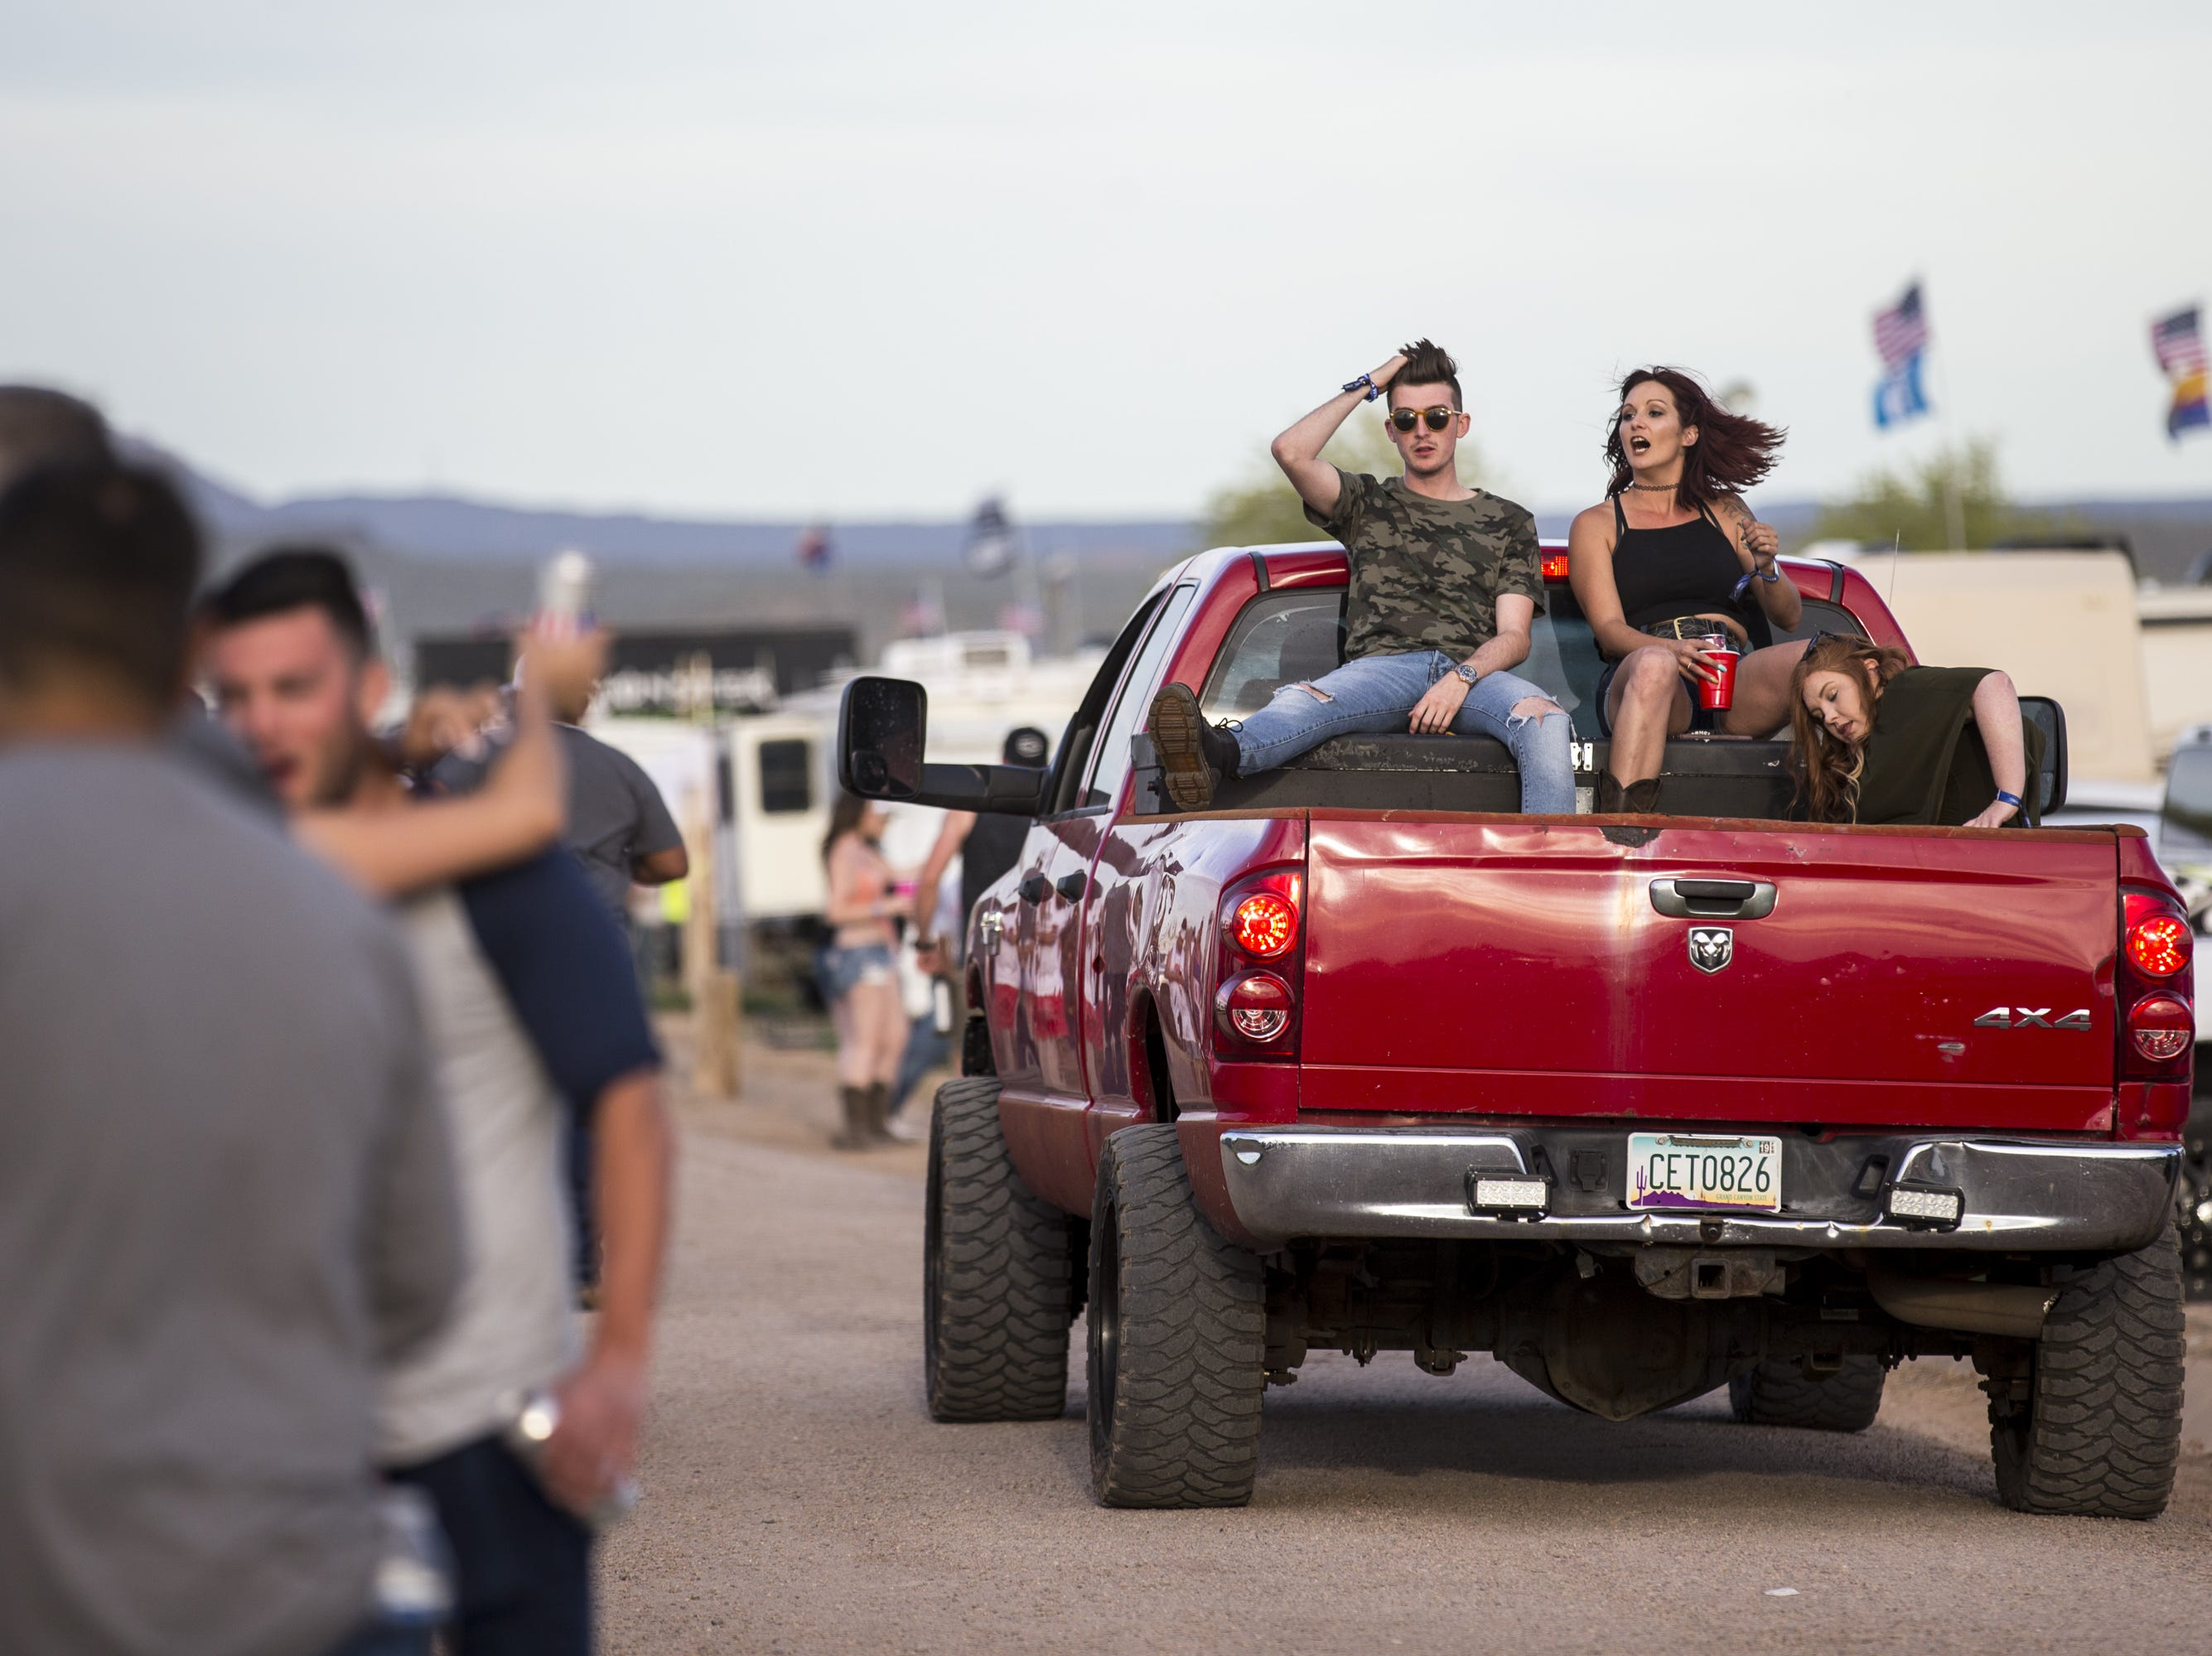 Festival-goers ride in the bed of a pickup truck outside the Crazy Coyote campsite on April 11, 2019, during Day 1 of Country Thunder Arizona in Florence.